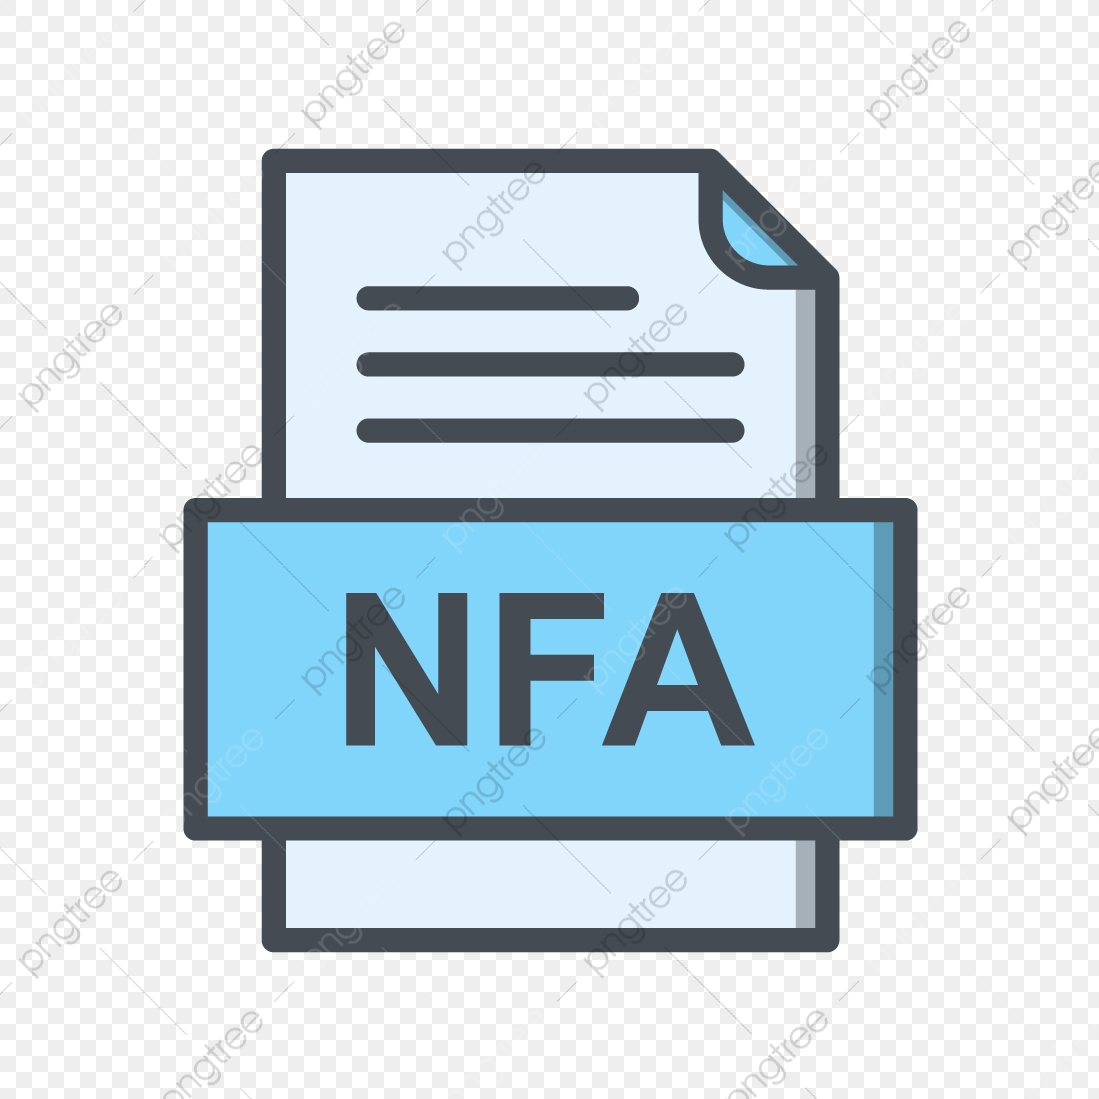 Nfa File Document Icon, Nfa, Document, File PNG and Vector.